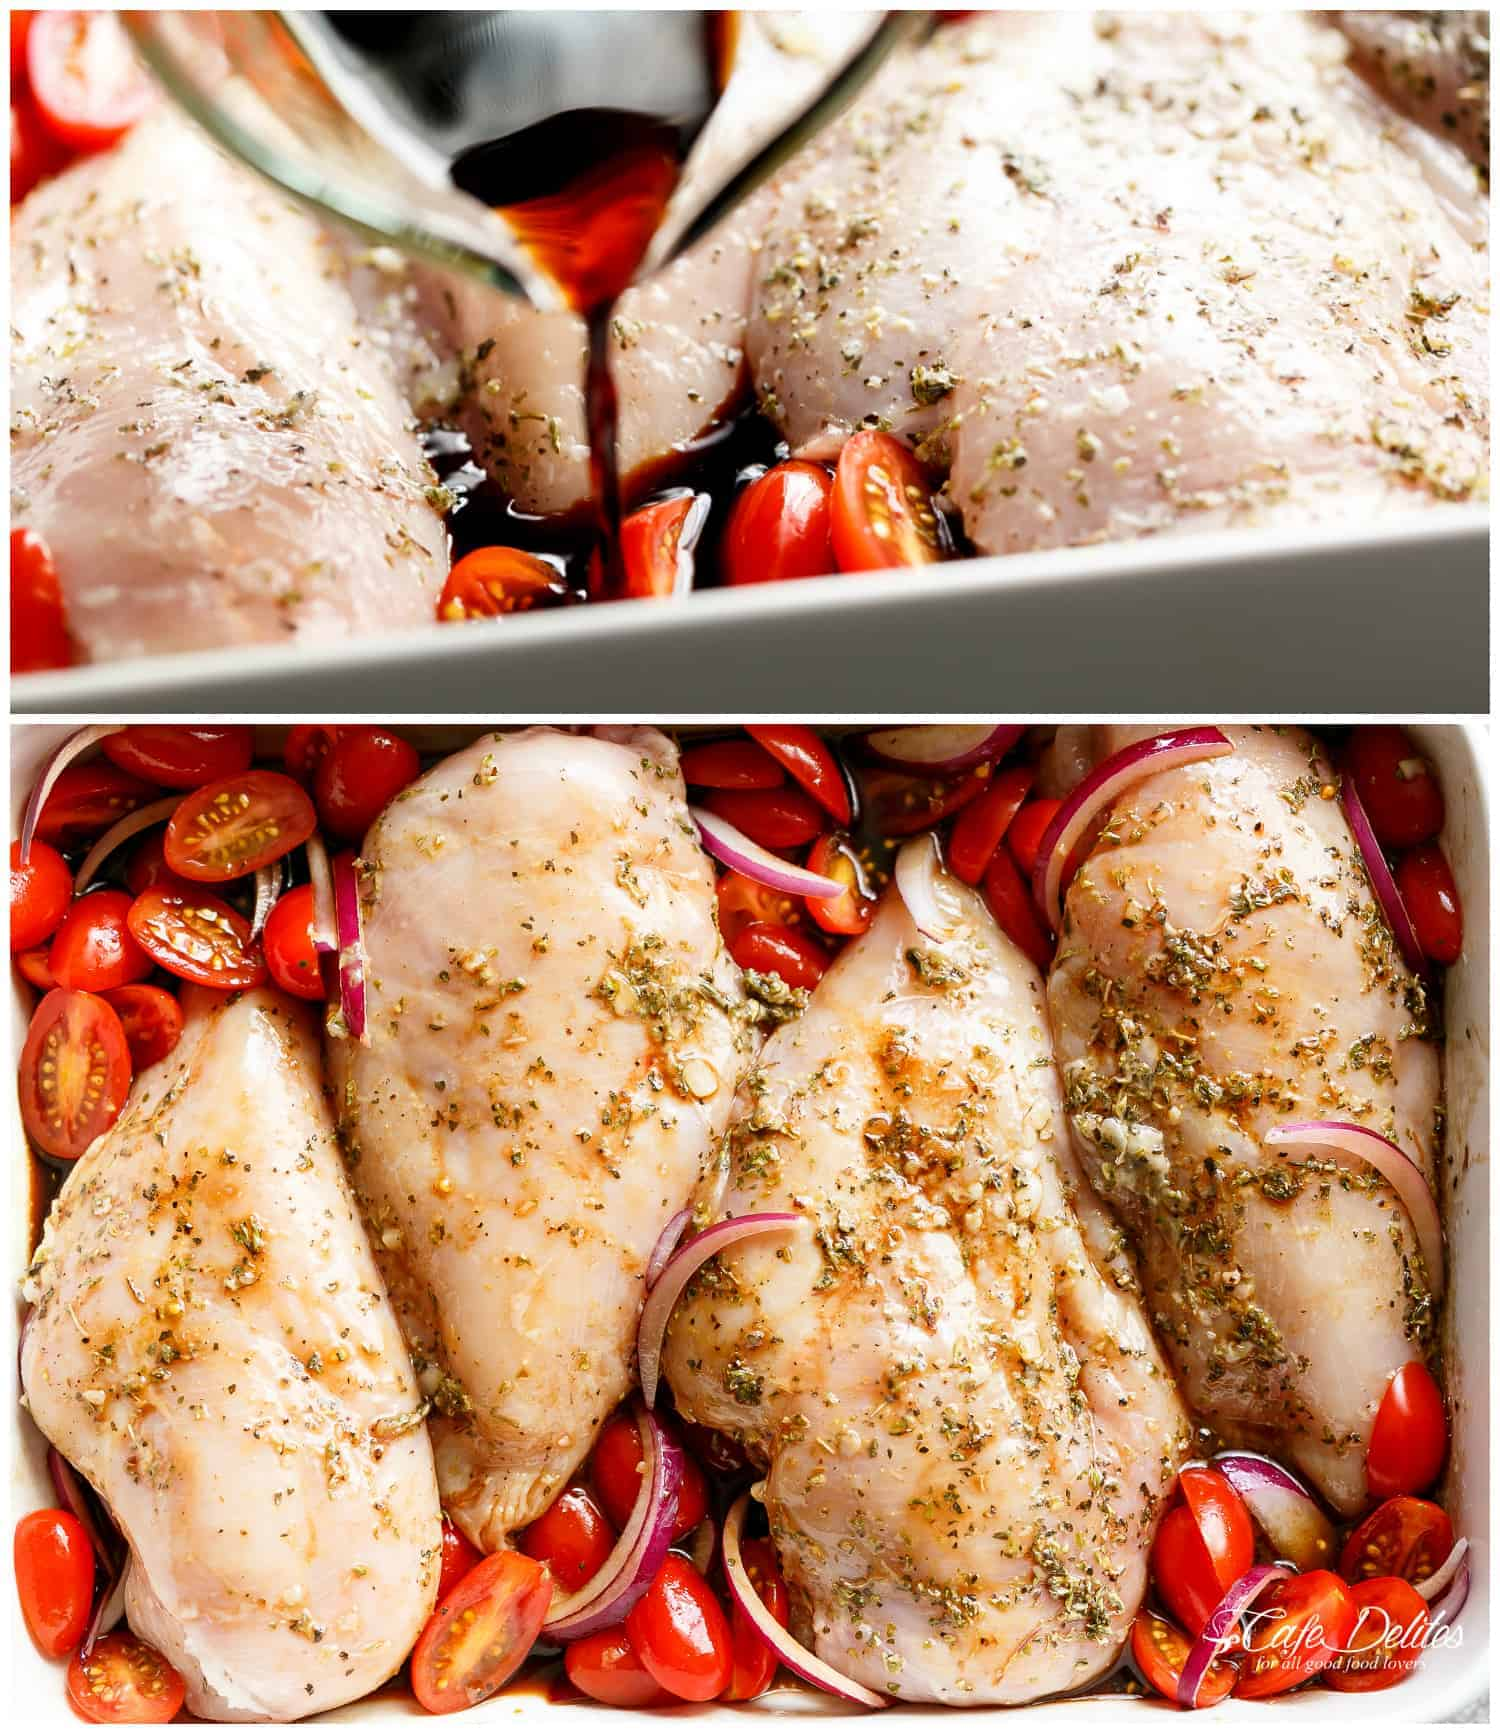 Chicken breast with kick baked a